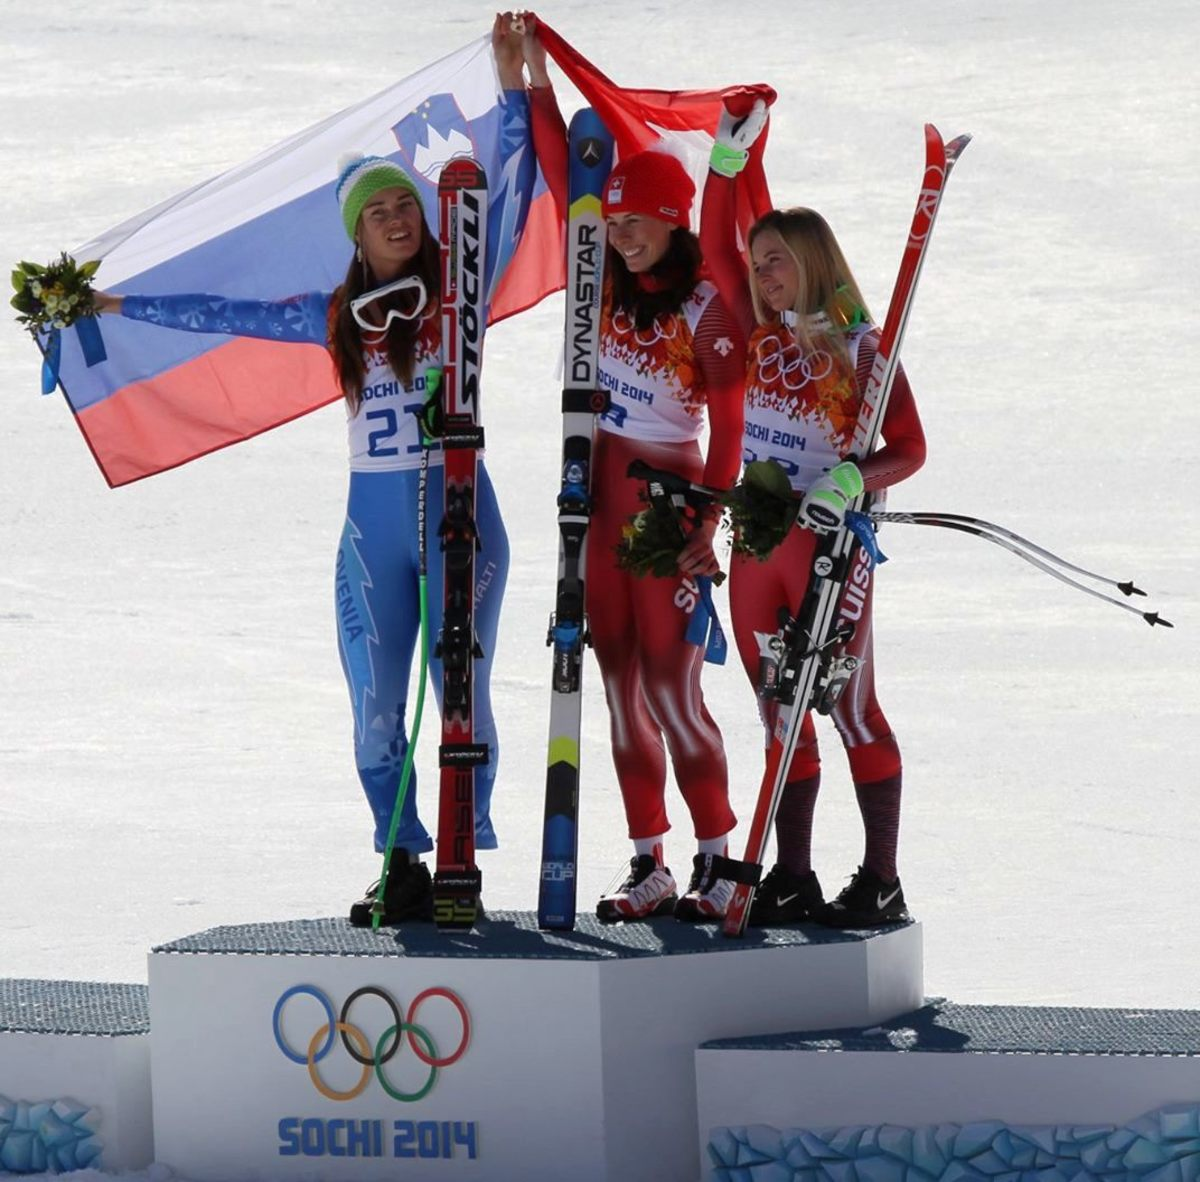 Downhill skiiers Tina Maze from Slovenia and Dominique Gisin from Switzerland tied for the Gold Medal in the 2014 Winter Olympics.  Here, they share the spotlight with Bonze medal winner Lara Gut from Switzerland.